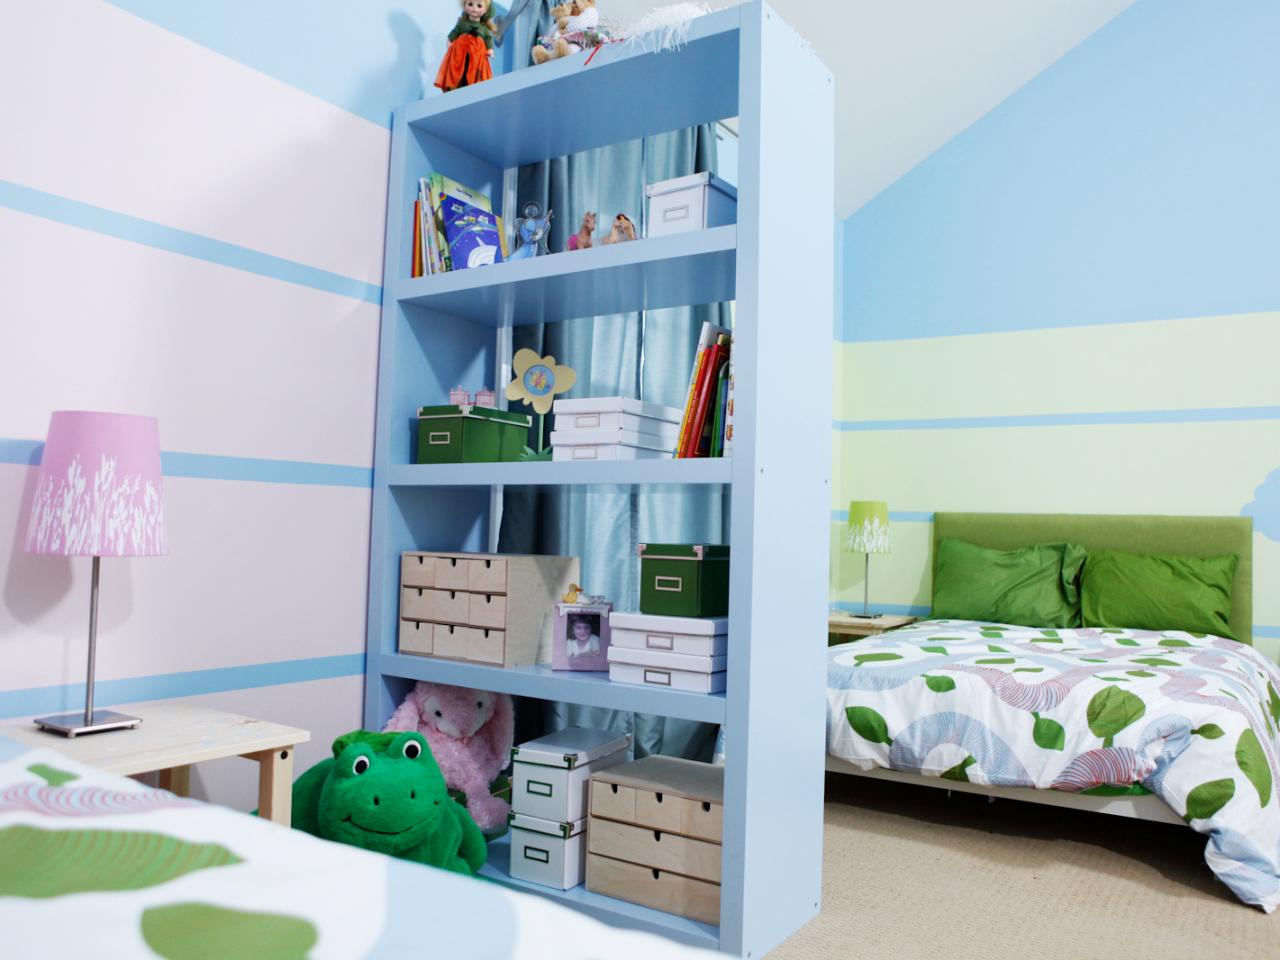 Kid Sized Design Shelving Bedroom Beauty S4x3 Jpg Rend Hgtvcom